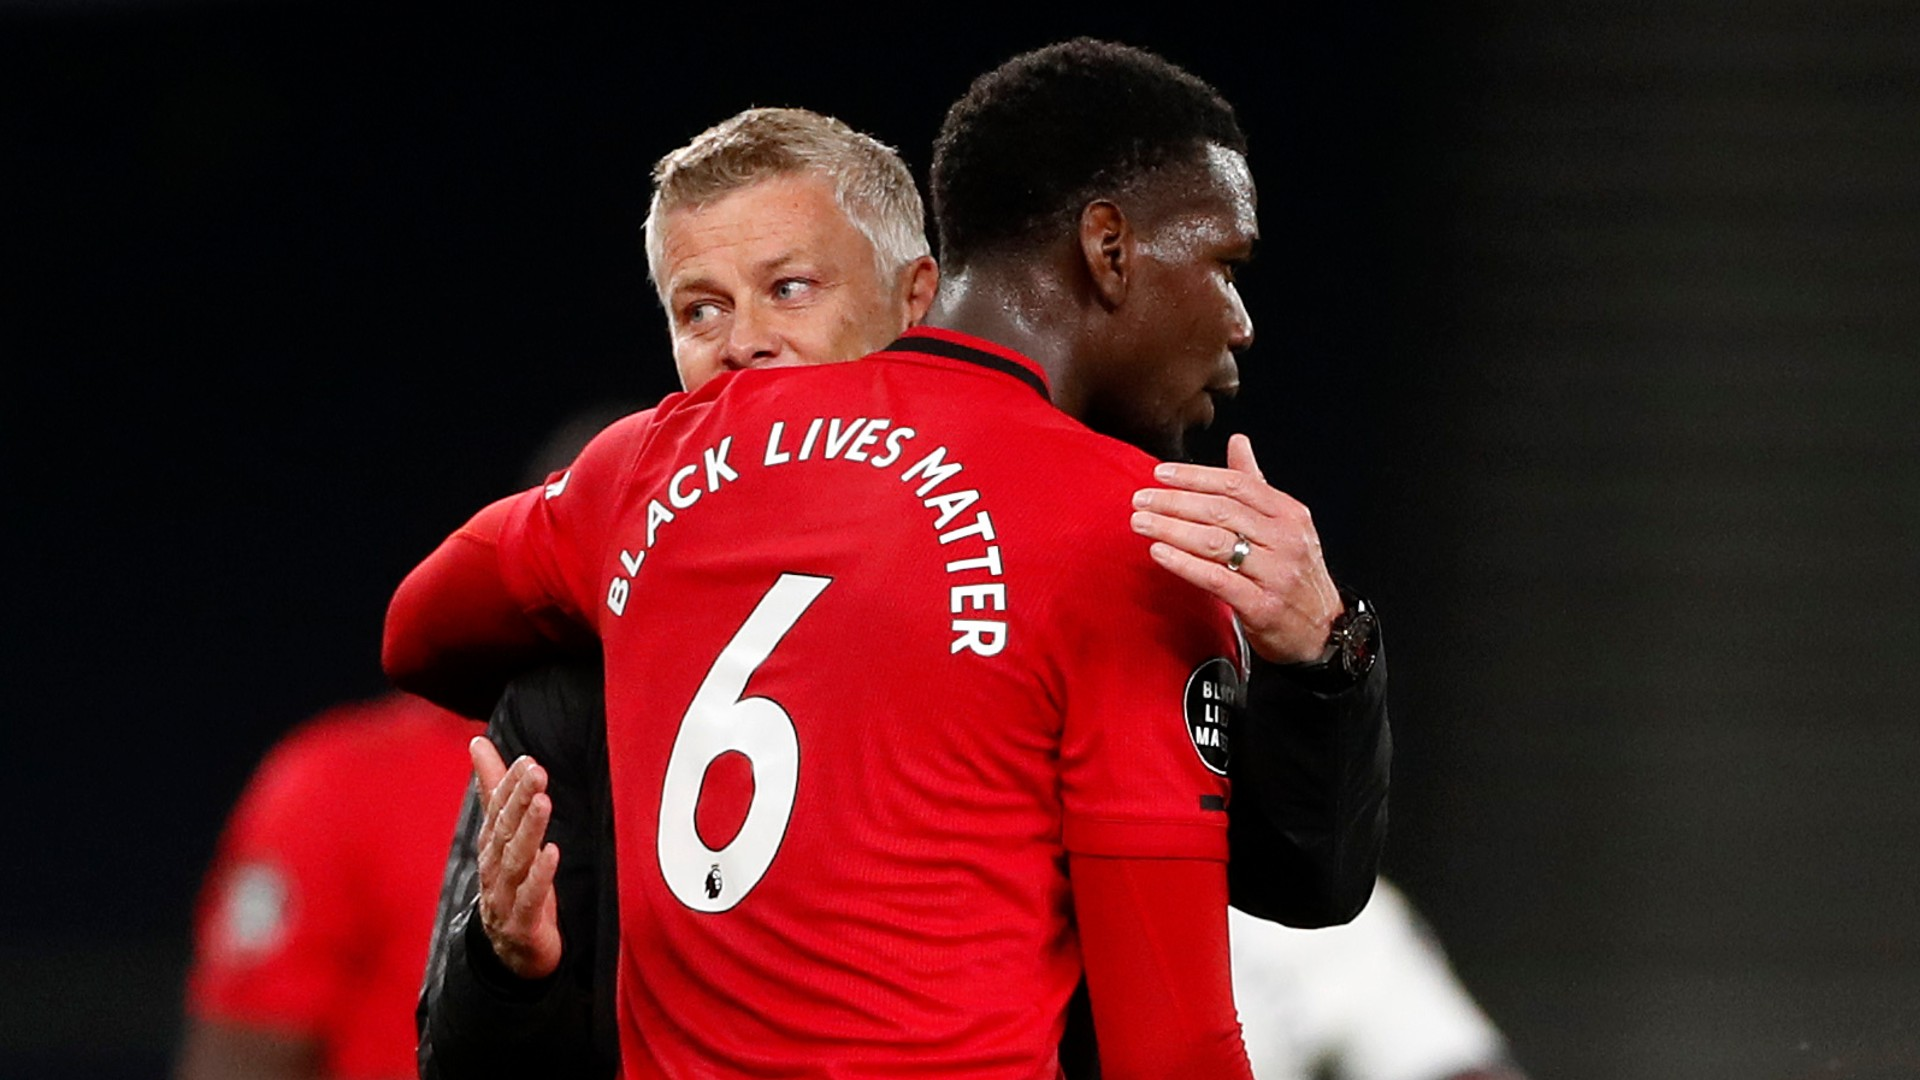 'Pogba's making up for lost time' - Man Utd coach Solskjaer 'delighted' to see Frenchman shine alongside Fernandes